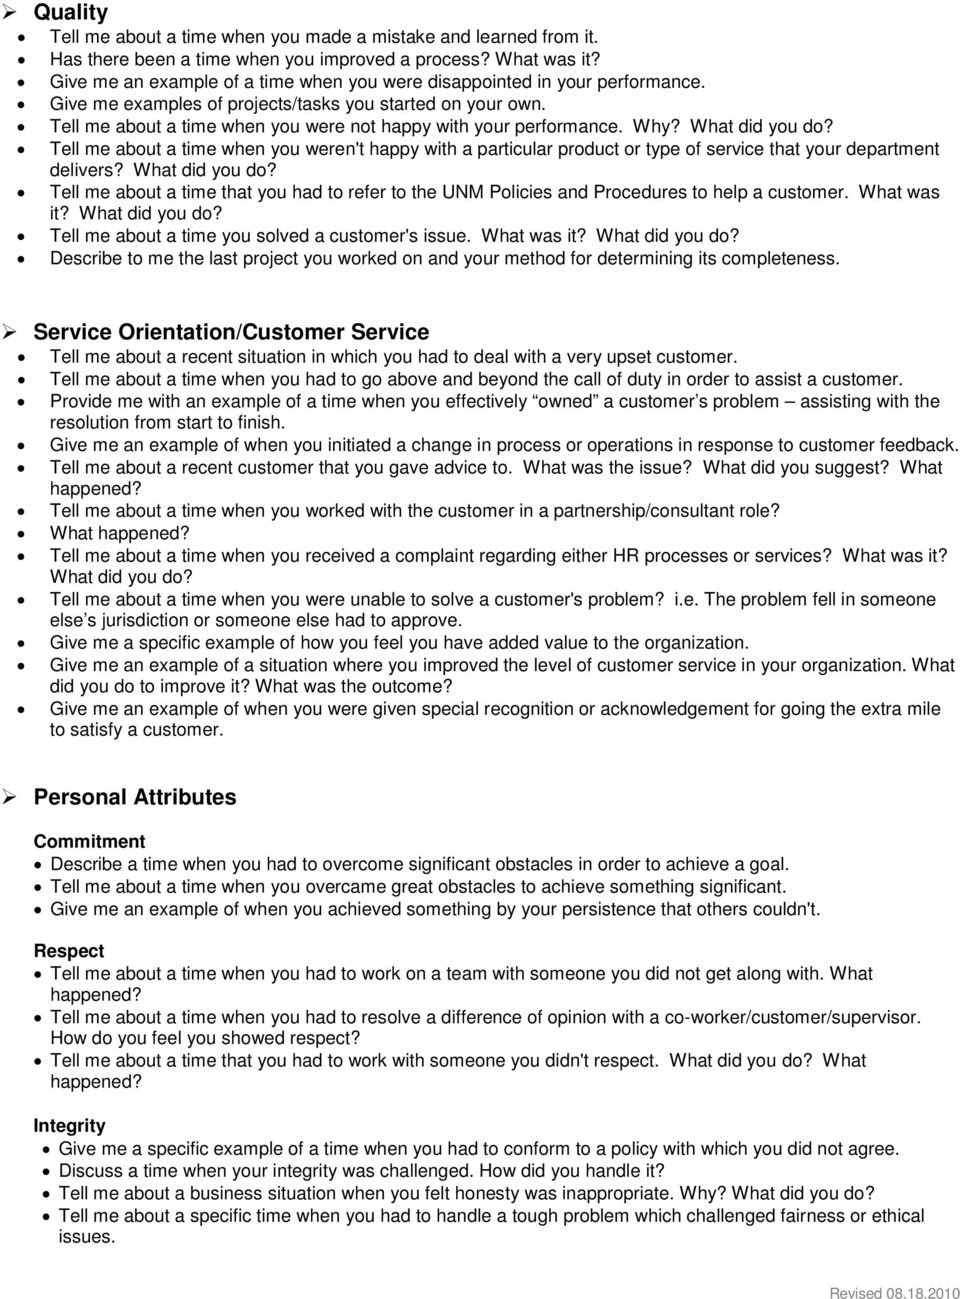 Interview Questions Behavioral Questions By Job Competency Pdf